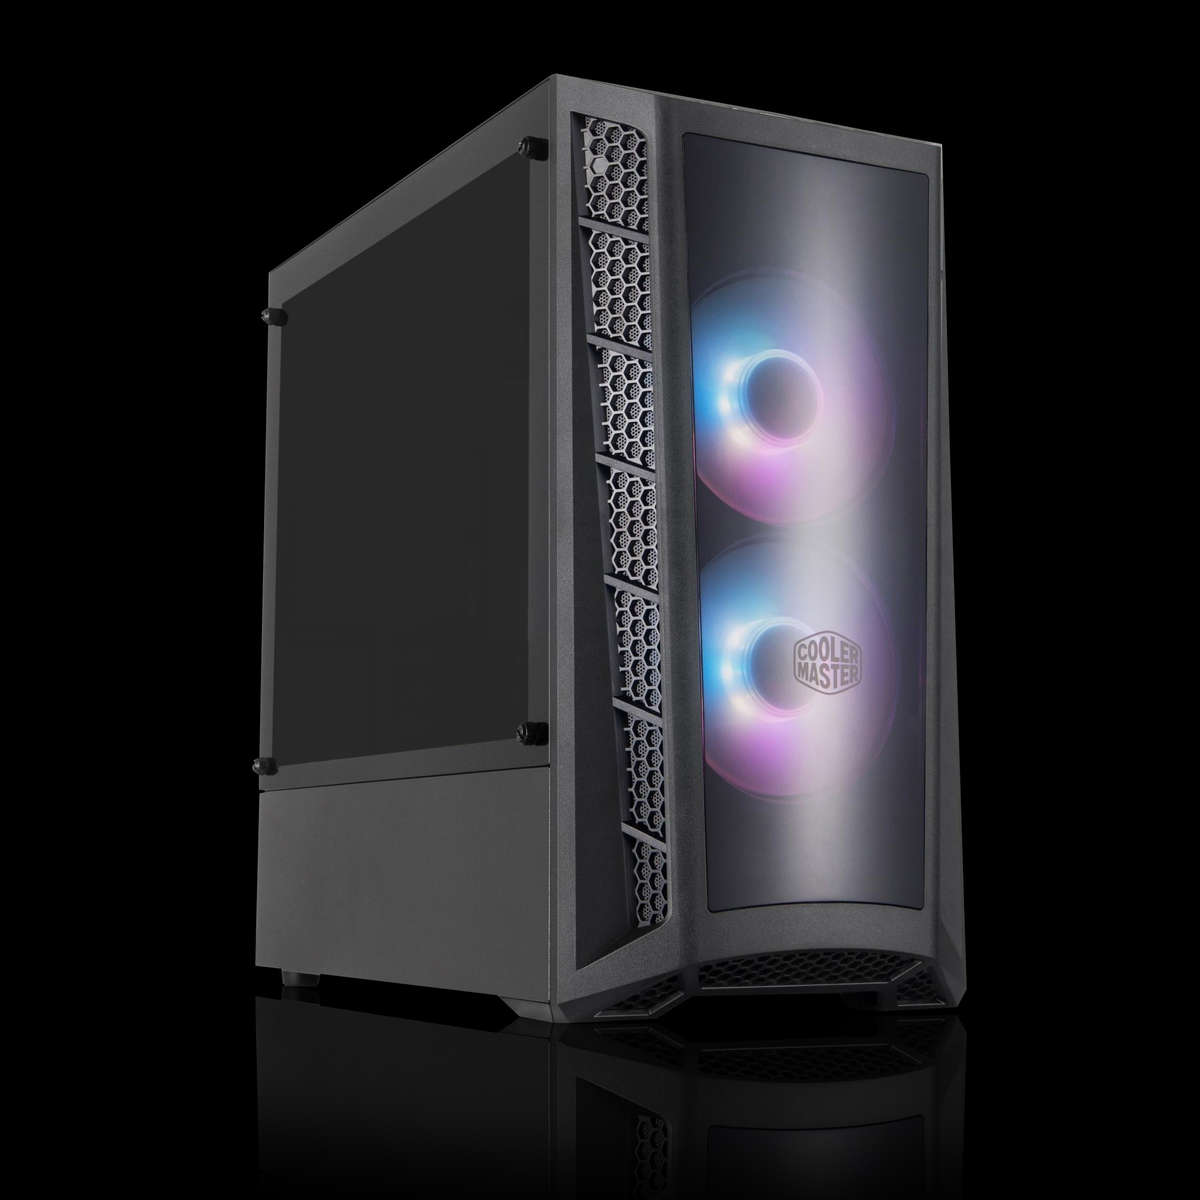 Image of the Chillblast Fusion Scimitar gaming PC